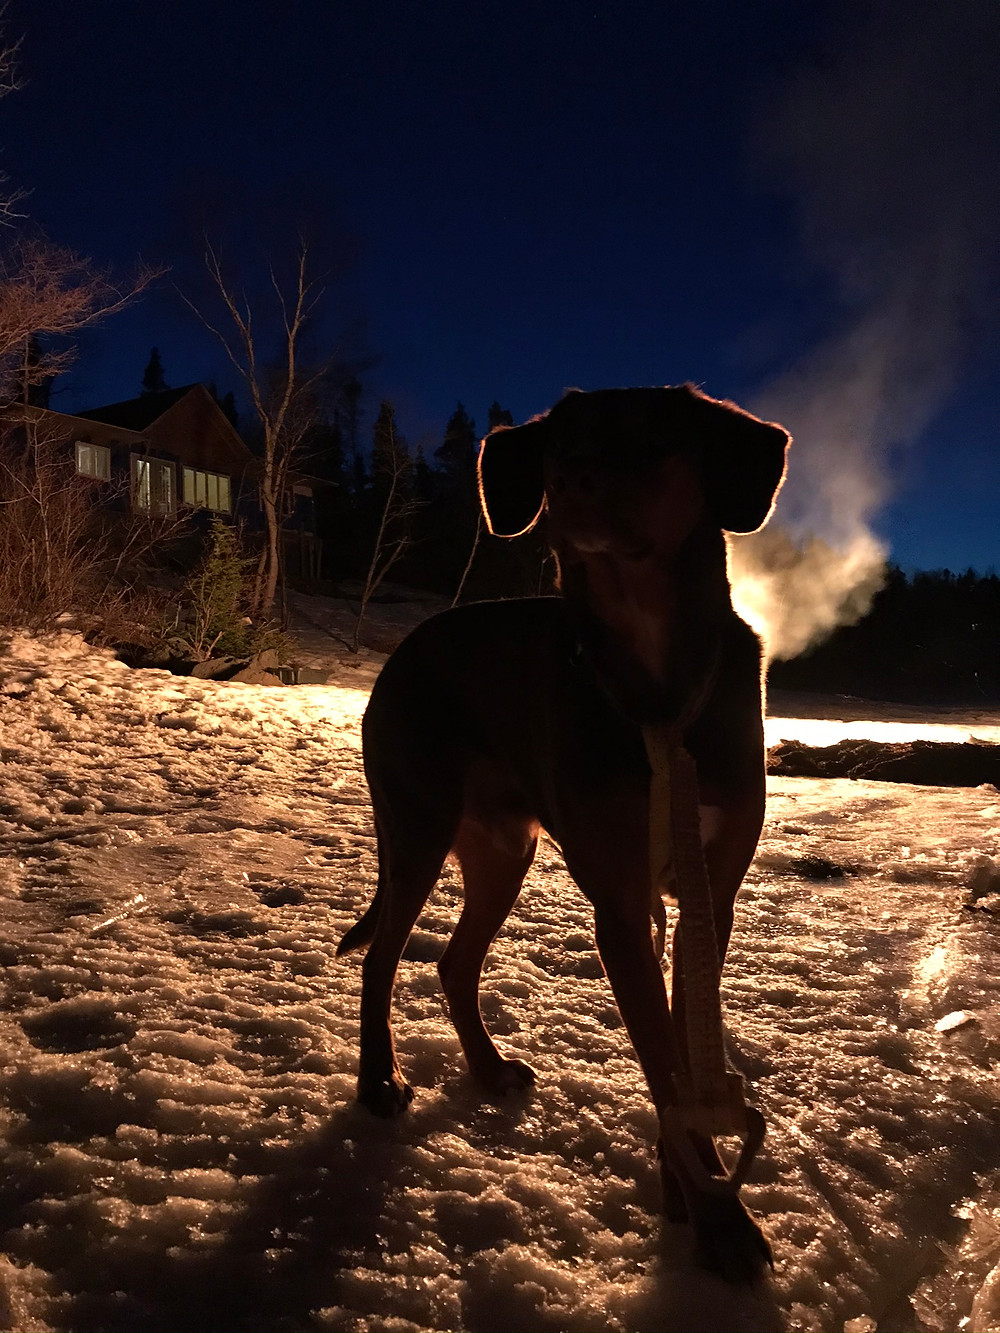 Duke the dog standing in front of a fire on a cold evening at the diy cabin